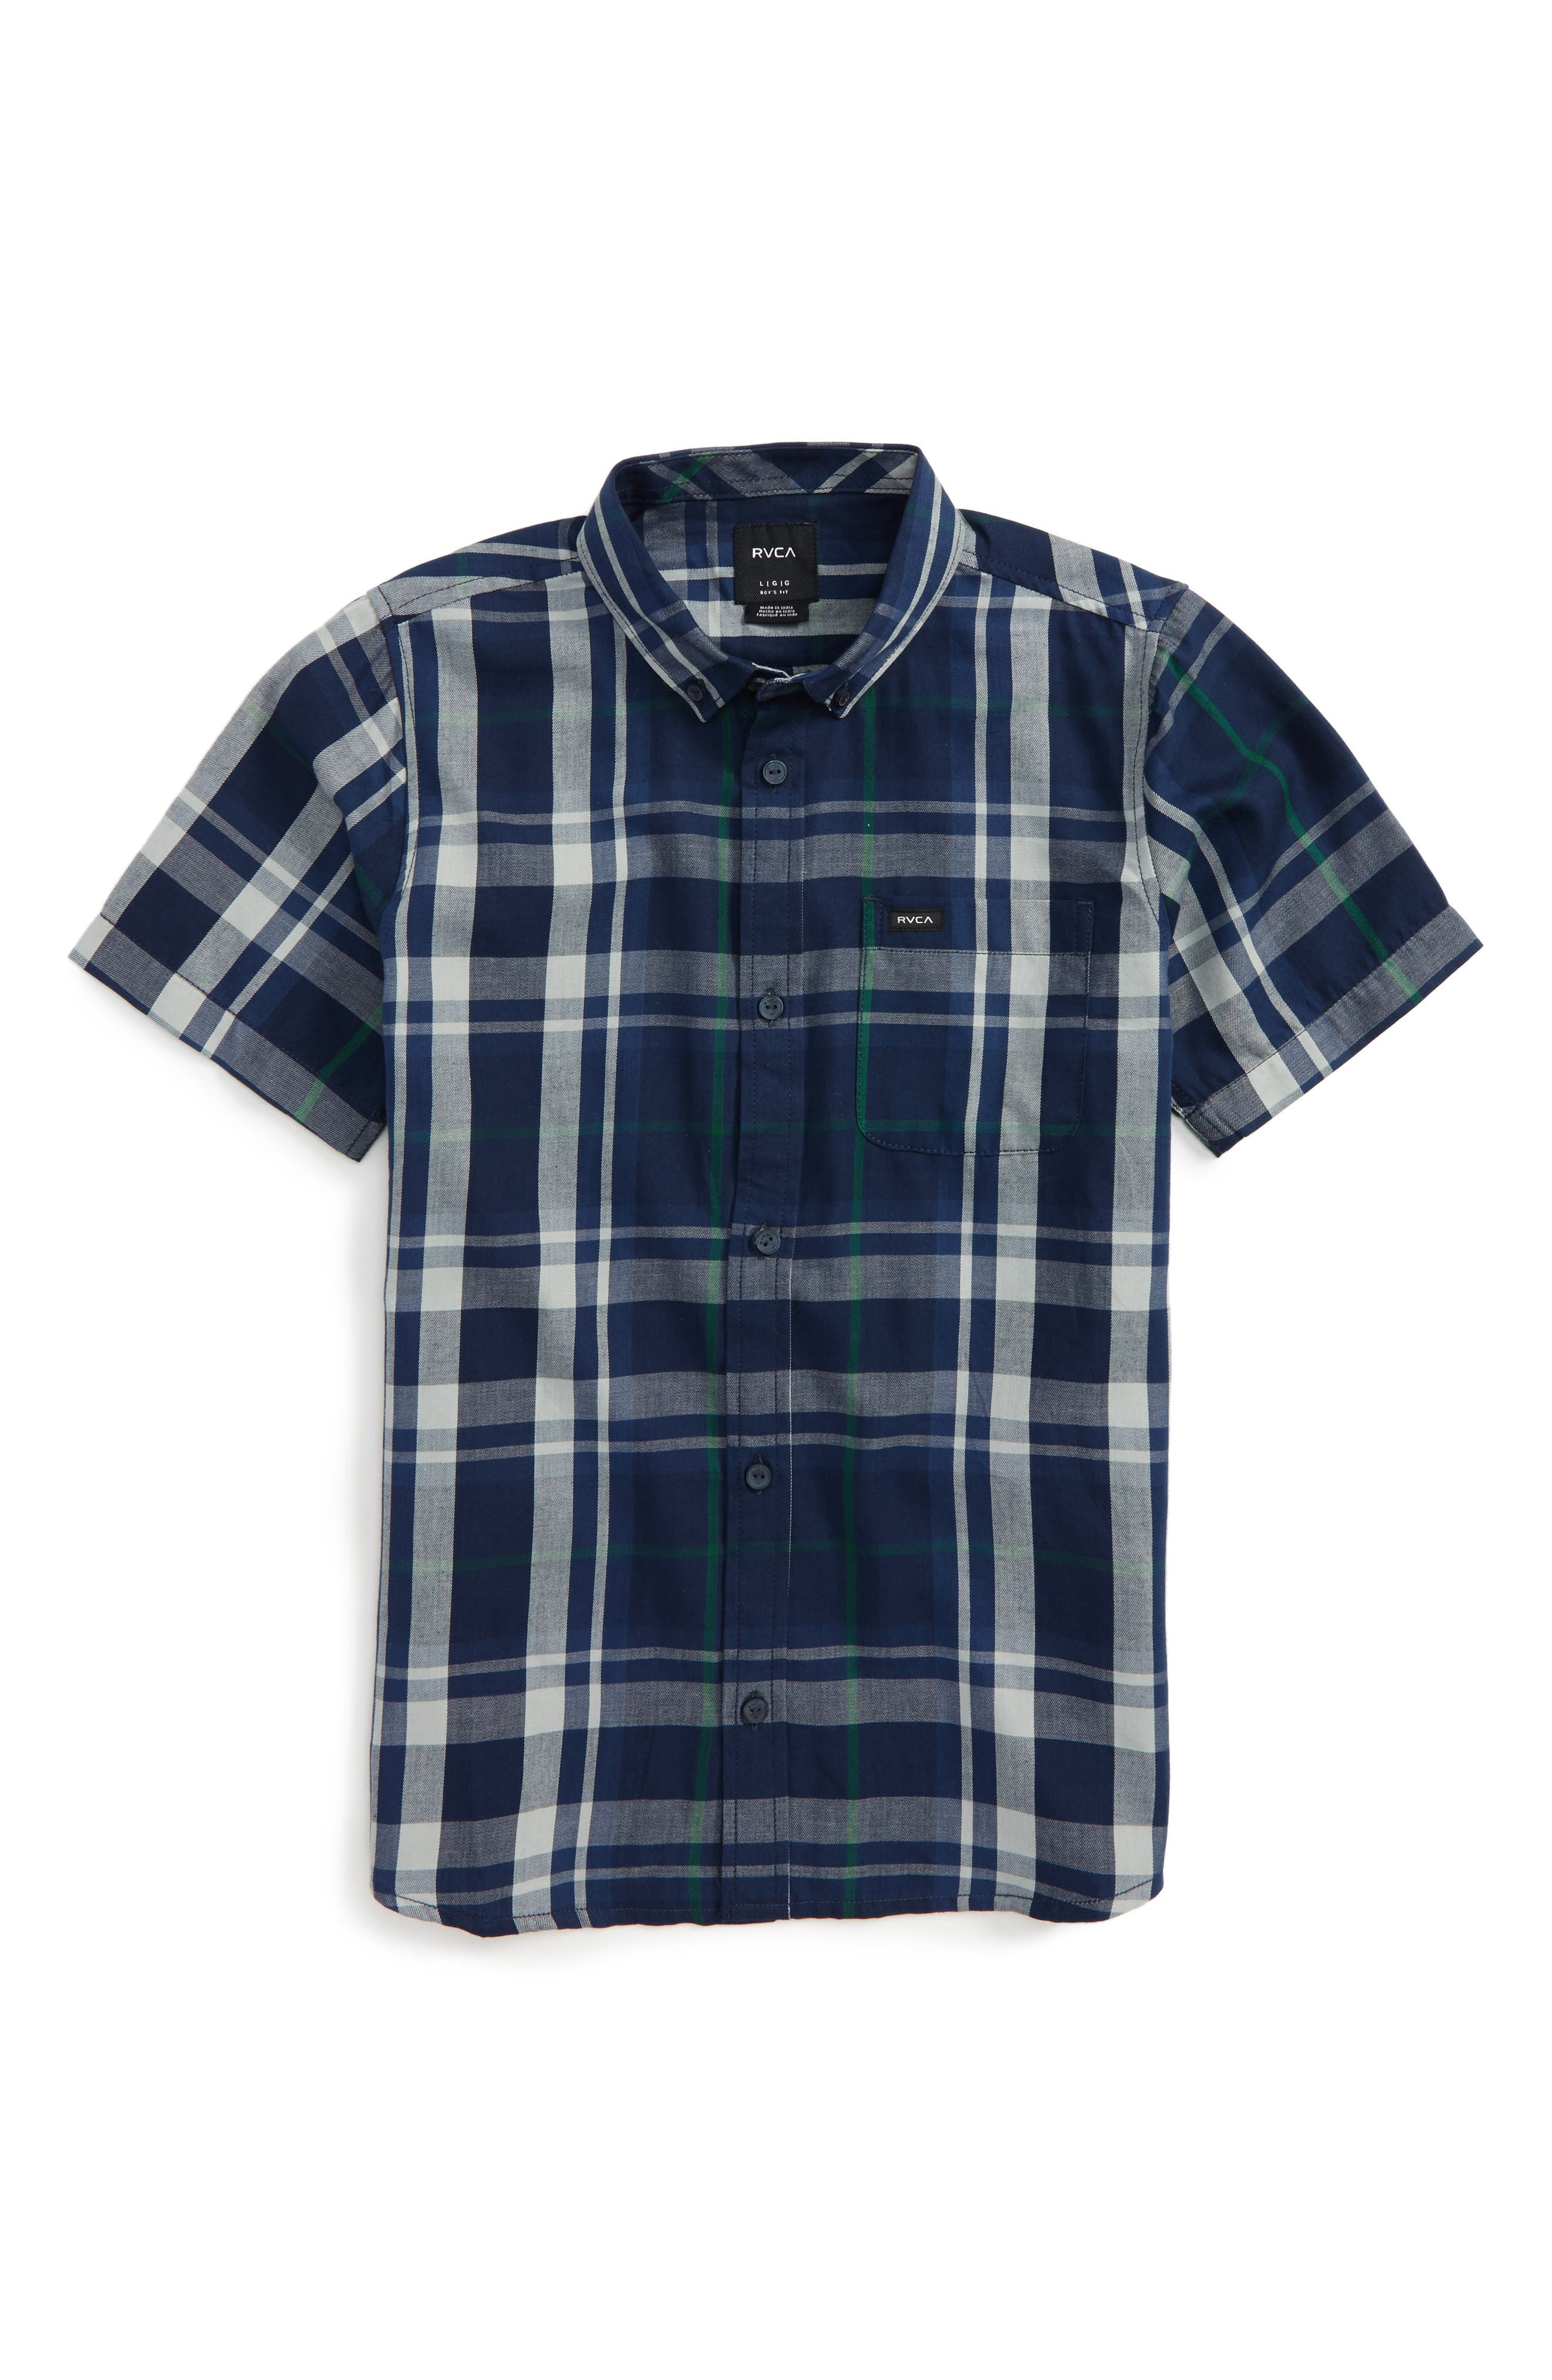 RVCA Plaid Woven Shirt (Big Boys)